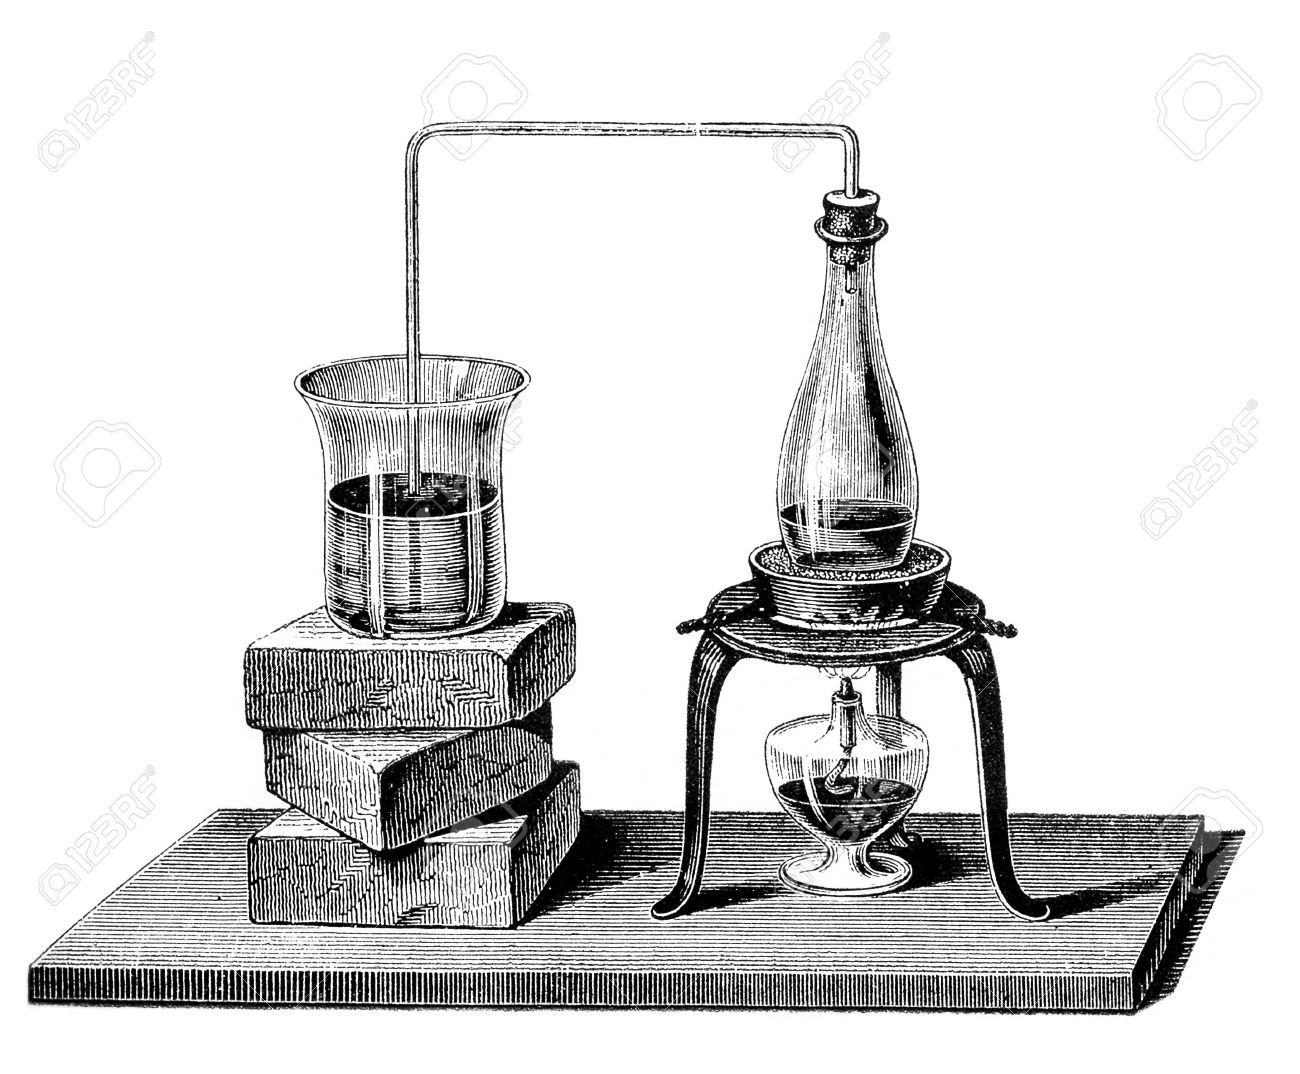 The bended glass pipe canalizes vapor from the  boiling water in the closed flask to the receiving glass on the left, causing the water inside to boil too Stock Photo - 26965830